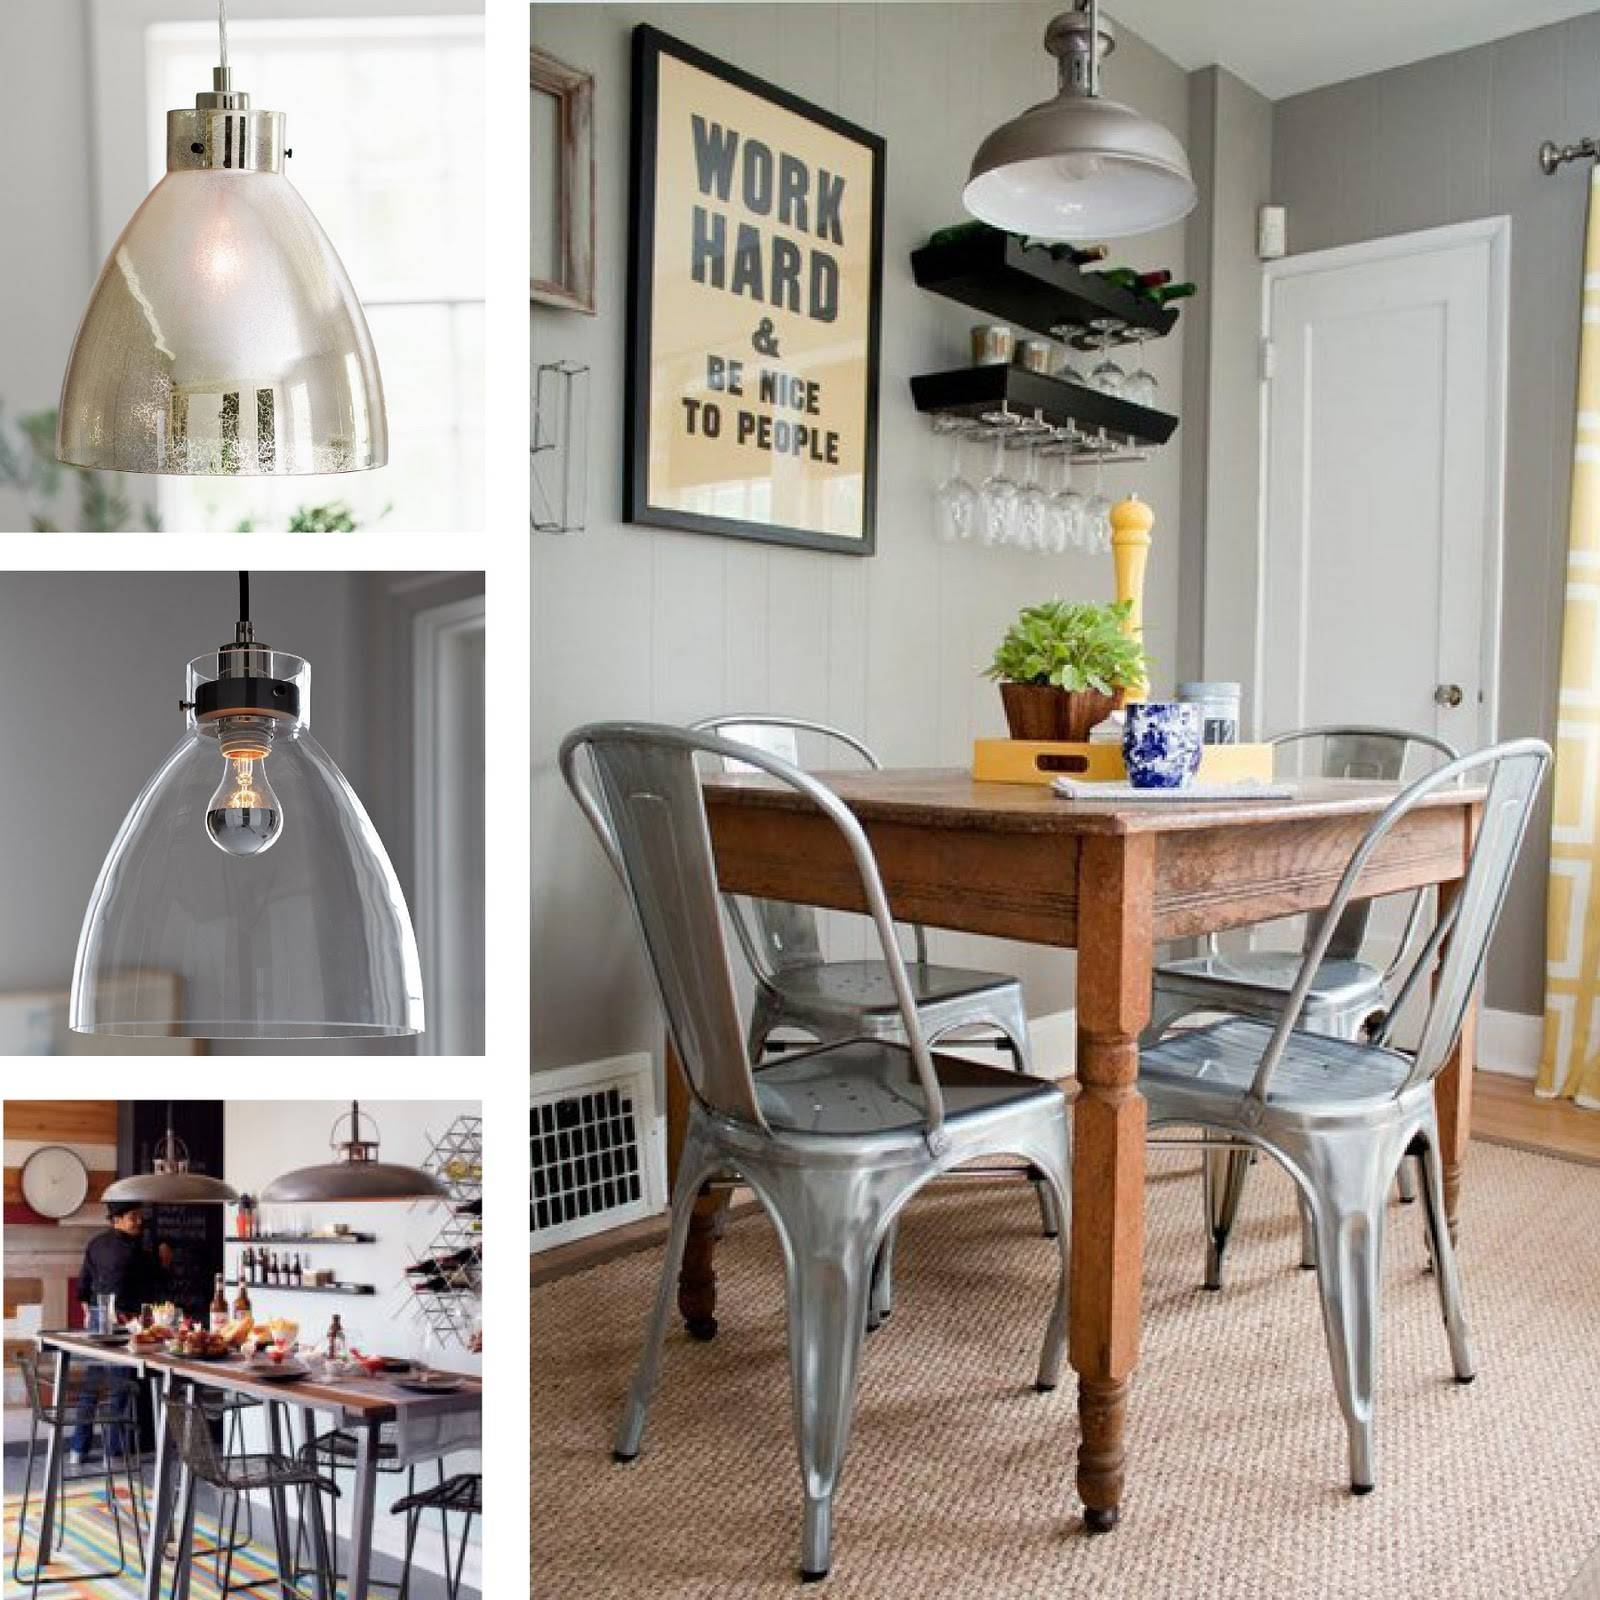 Home Decor + Home Lighting Blog » Blog Archive » Lighting Trends Regarding Short Pendant Lights Fixtures (View 8 of 15)